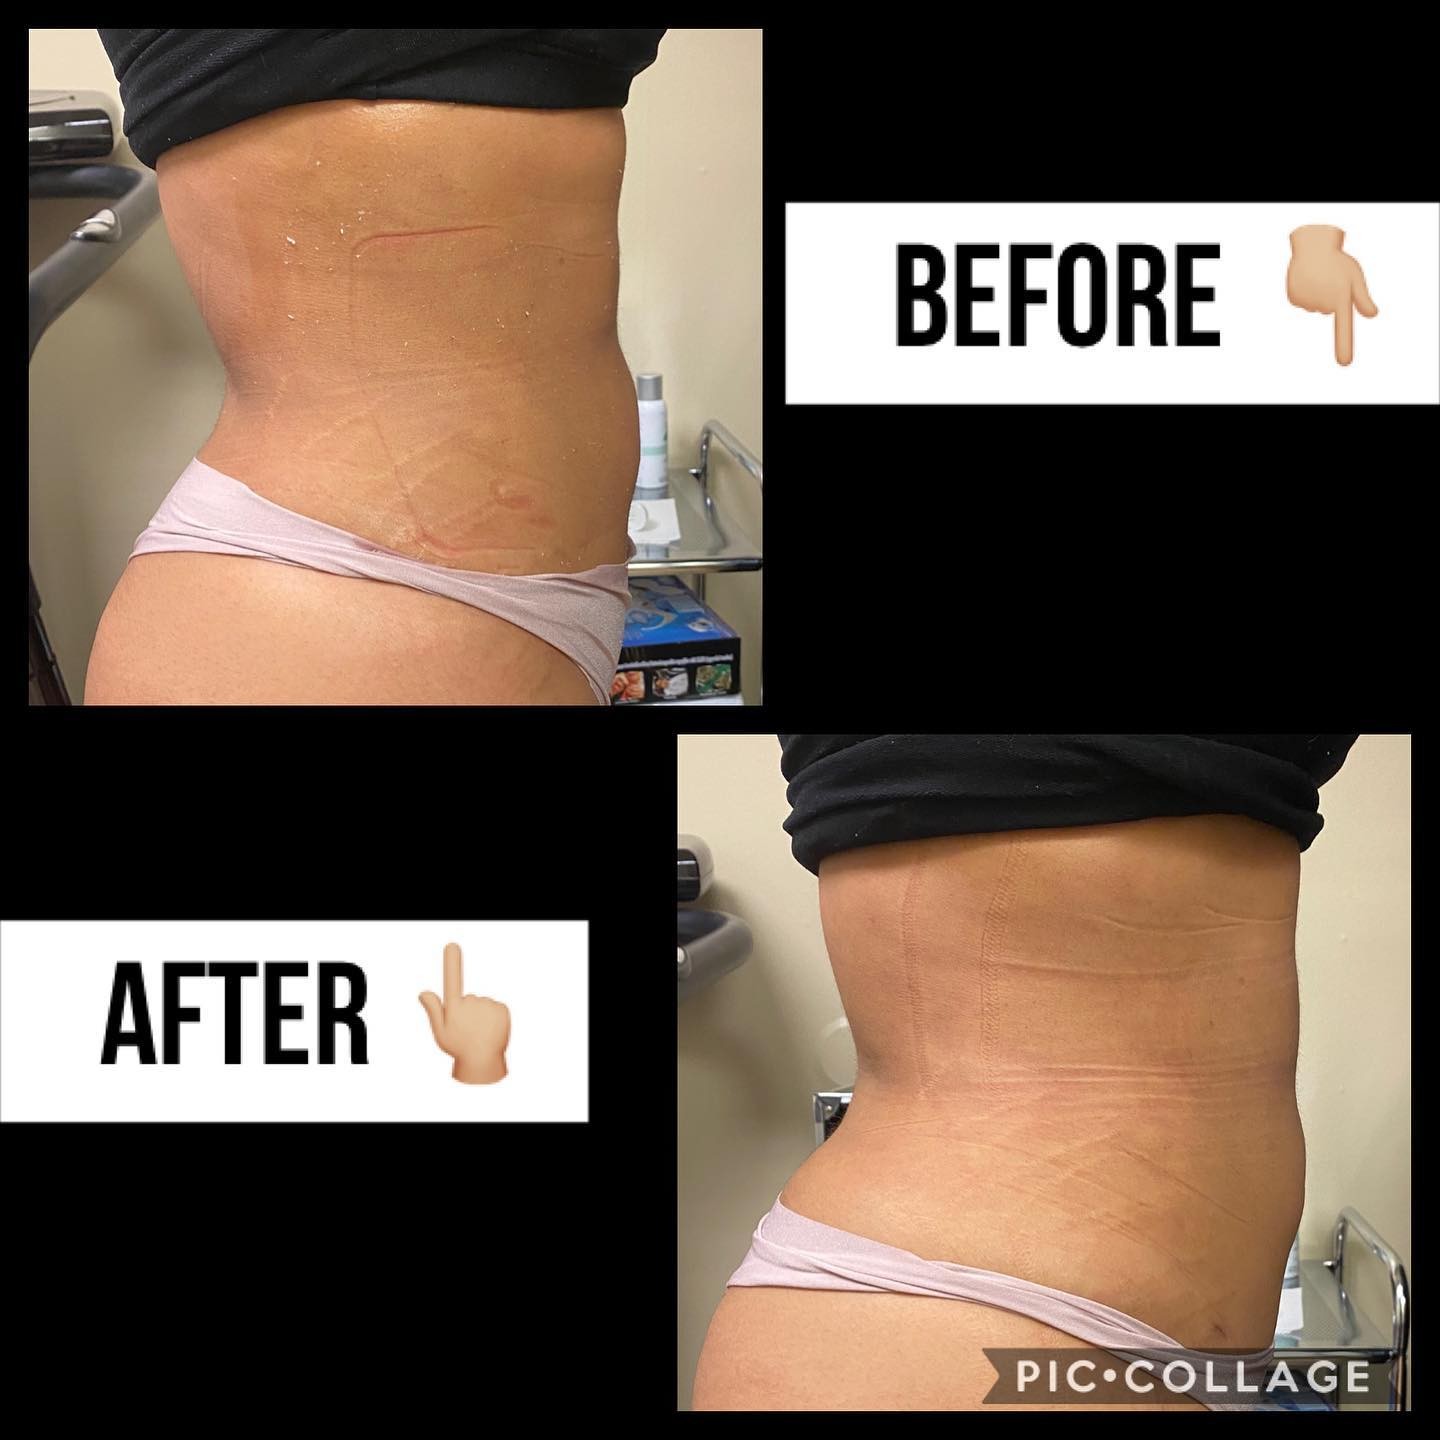 BODY BY JULISSA NON SURGICAL BODY SCULPTING